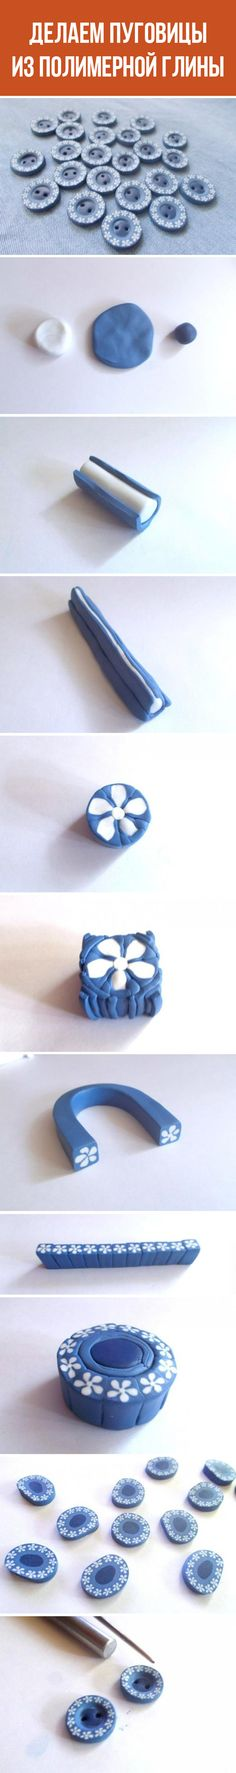 Clay flower print button cane photo tutorial